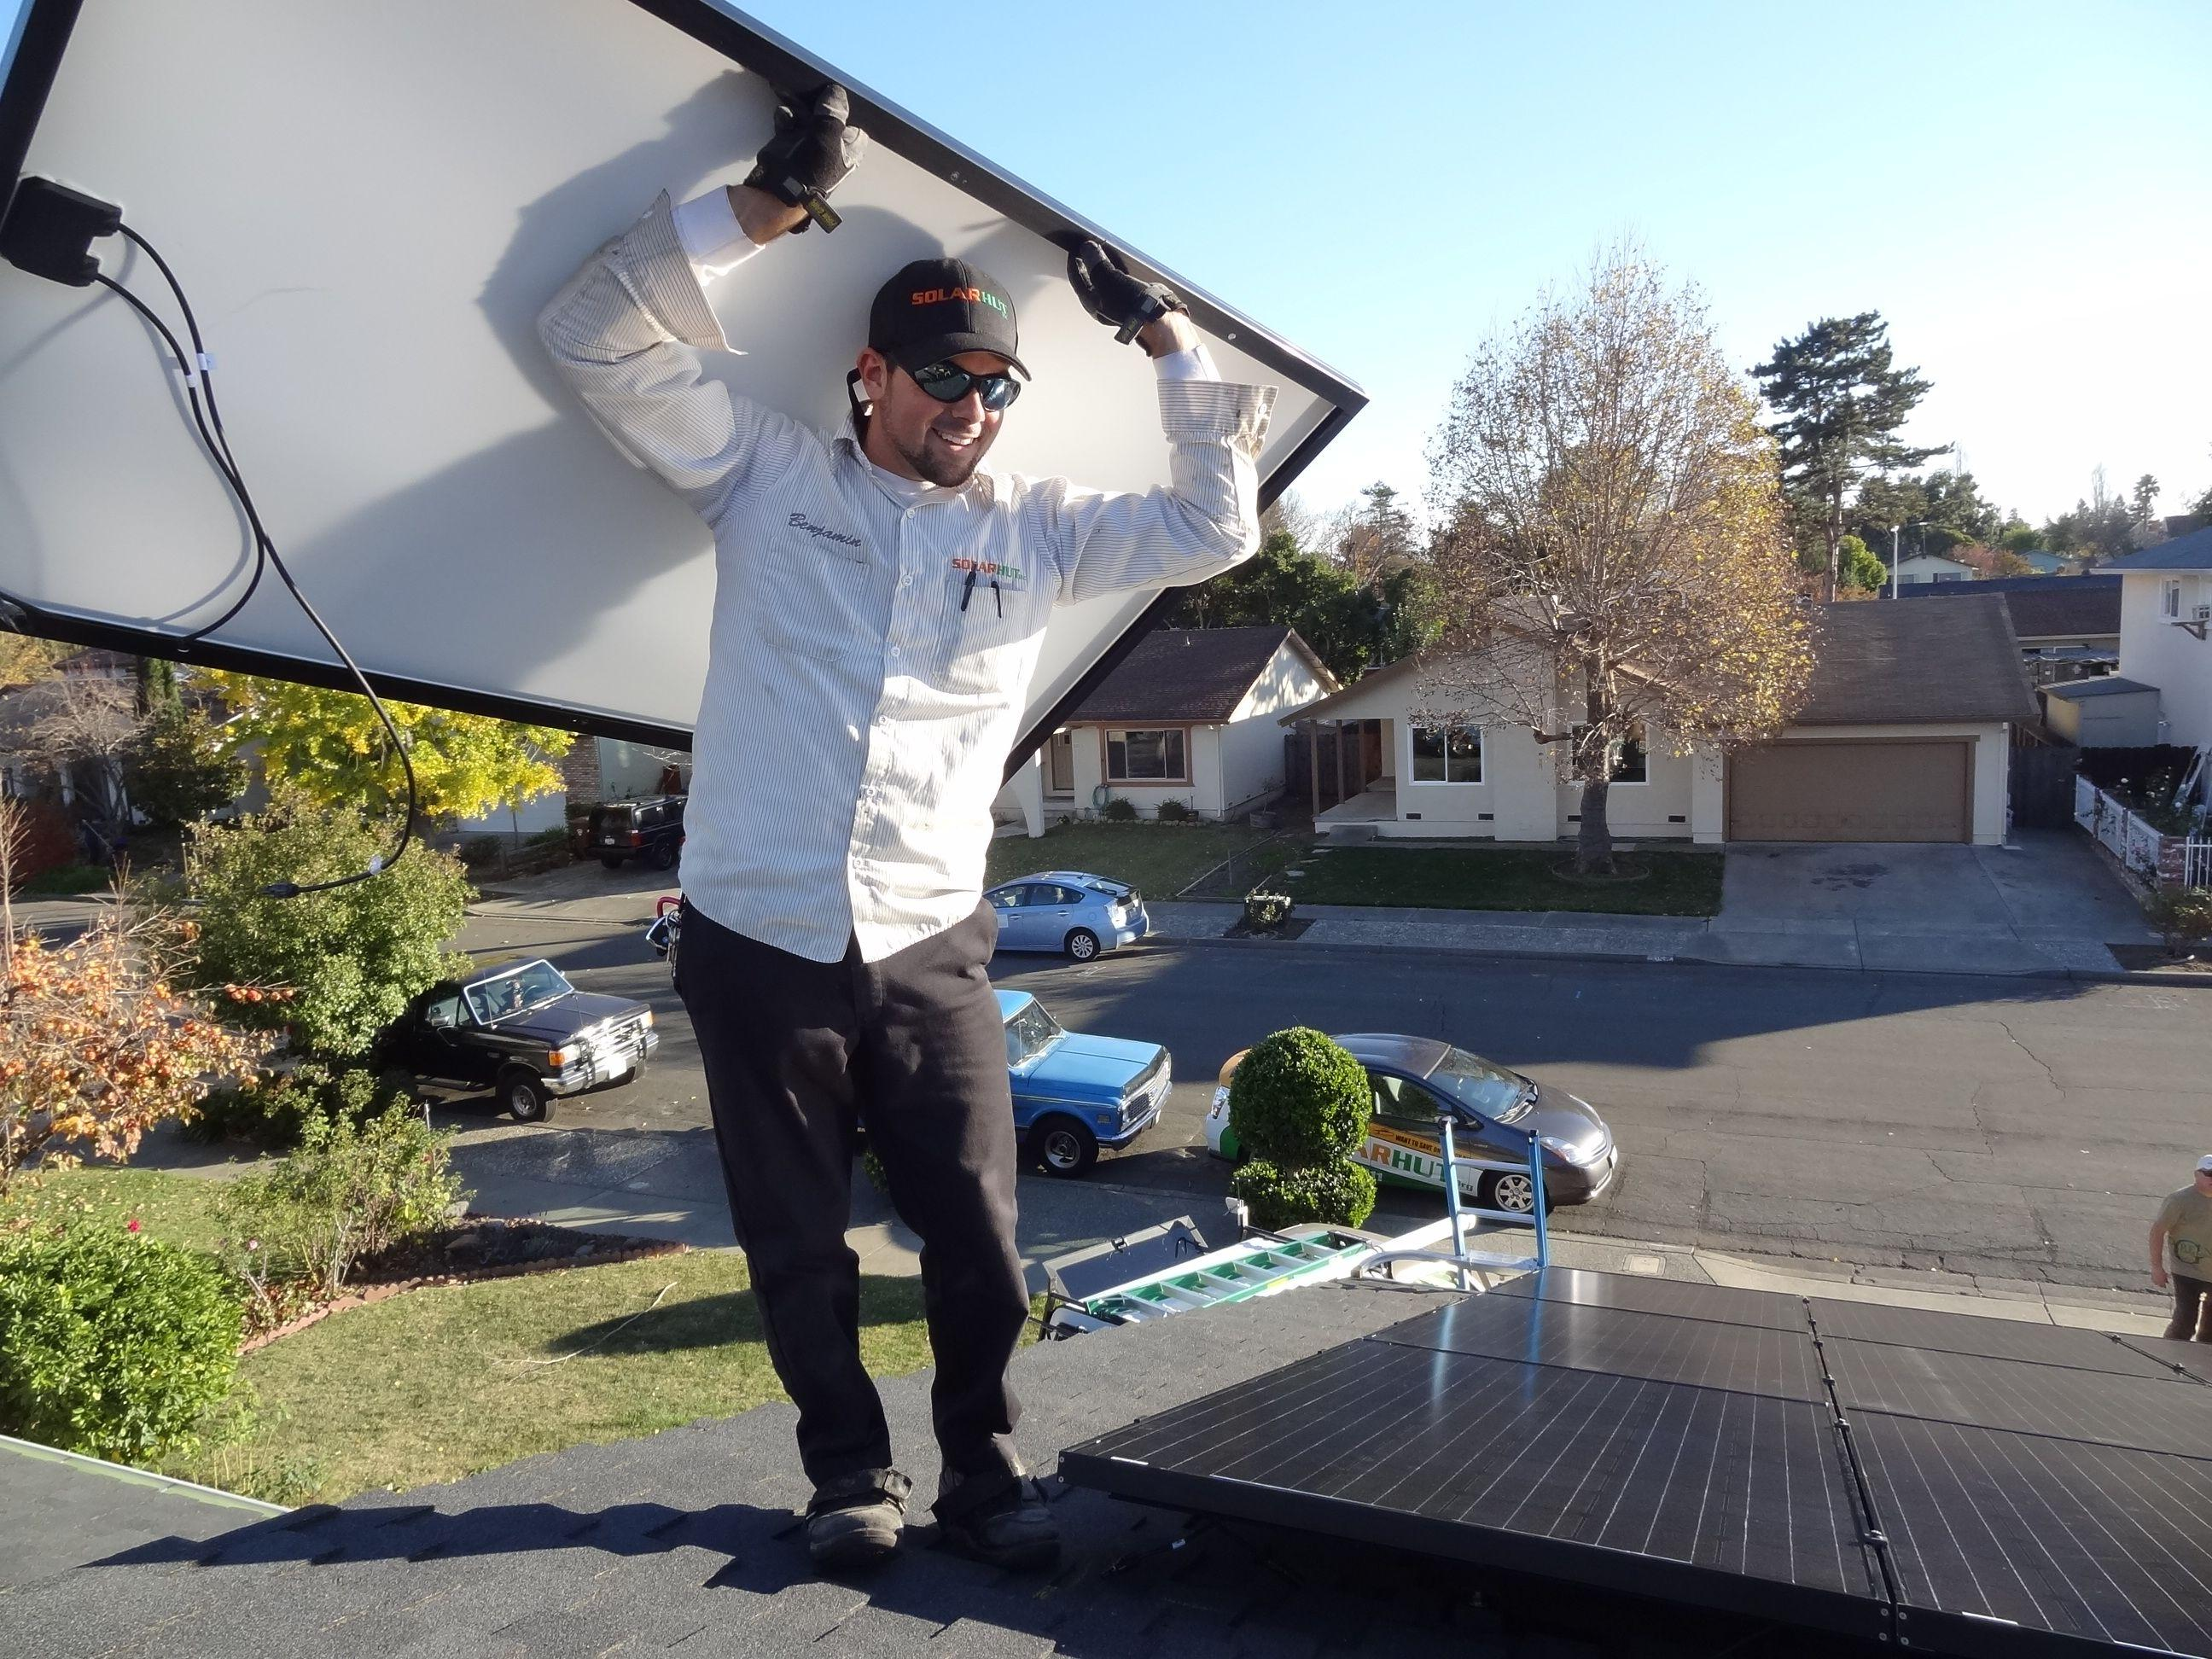 Technician carrying solar panel up on a roof